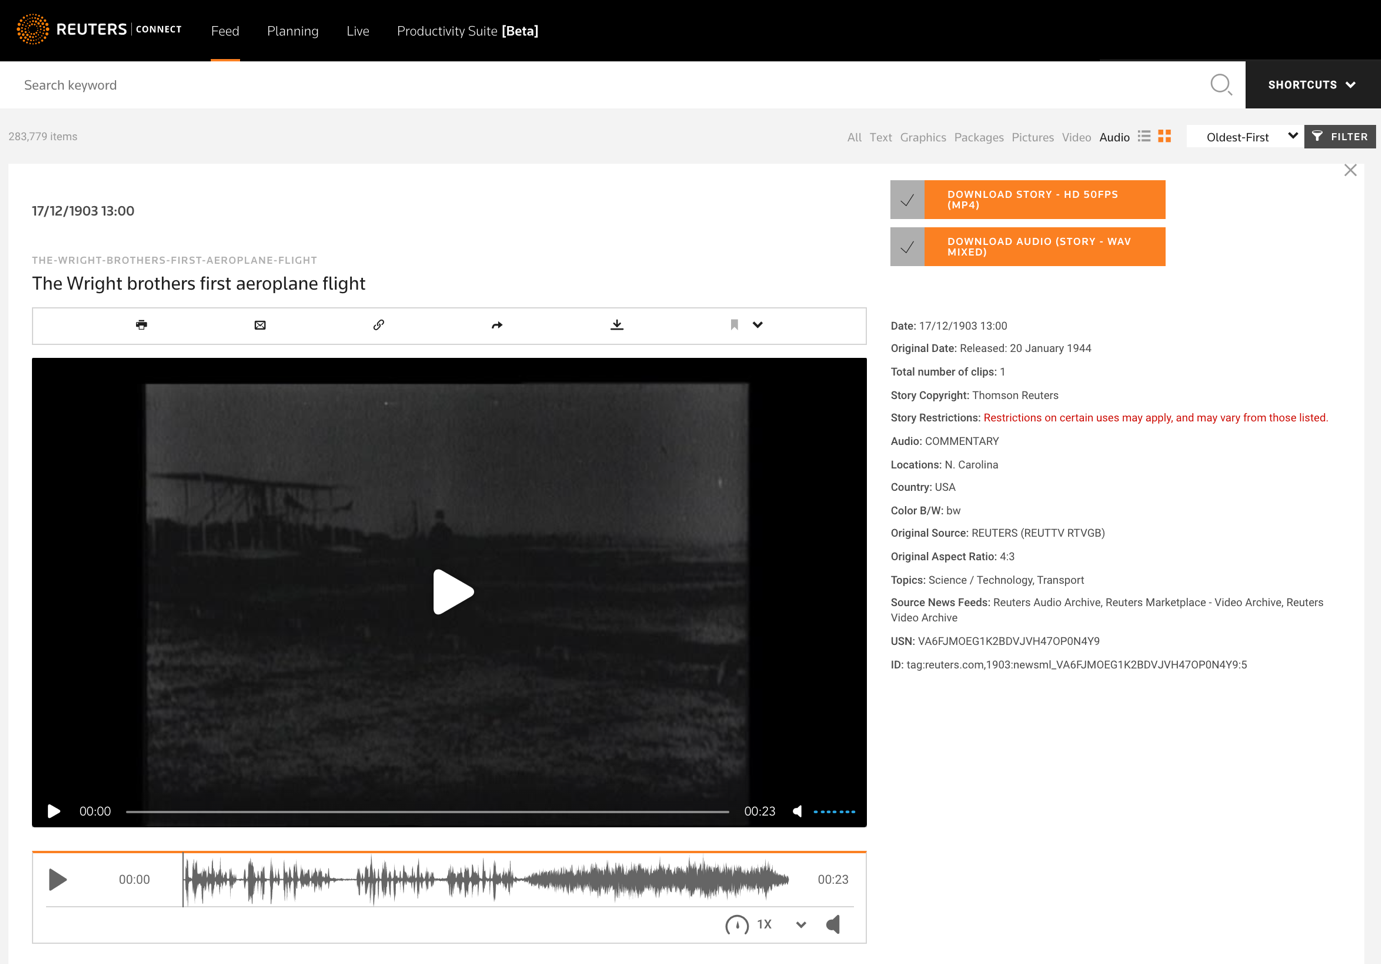 An example of an archive clip with its audio track available for purchase on Reuters Connect